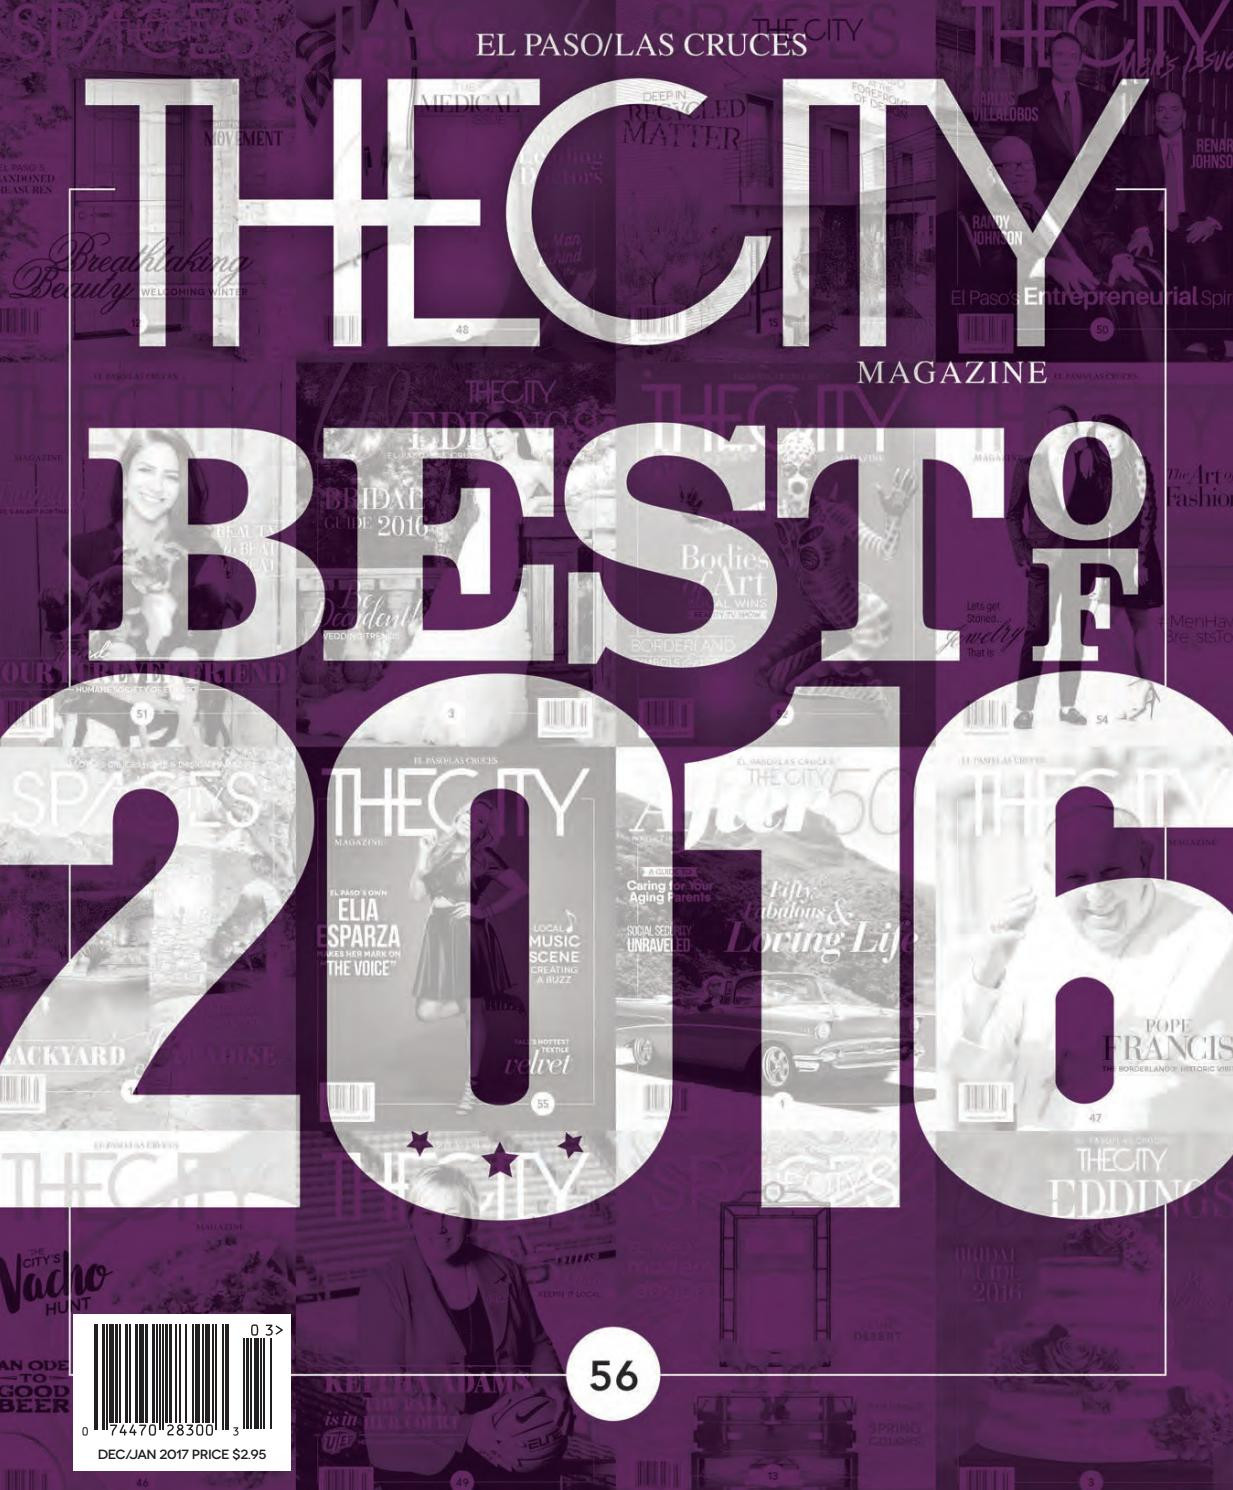 hardwood flooring el paso tx of thecity magazine el paso • best of 2016 by thecity magazine el paso within thecity magazine el paso • best of 2016 by thecity magazine el paso las cruces issuu